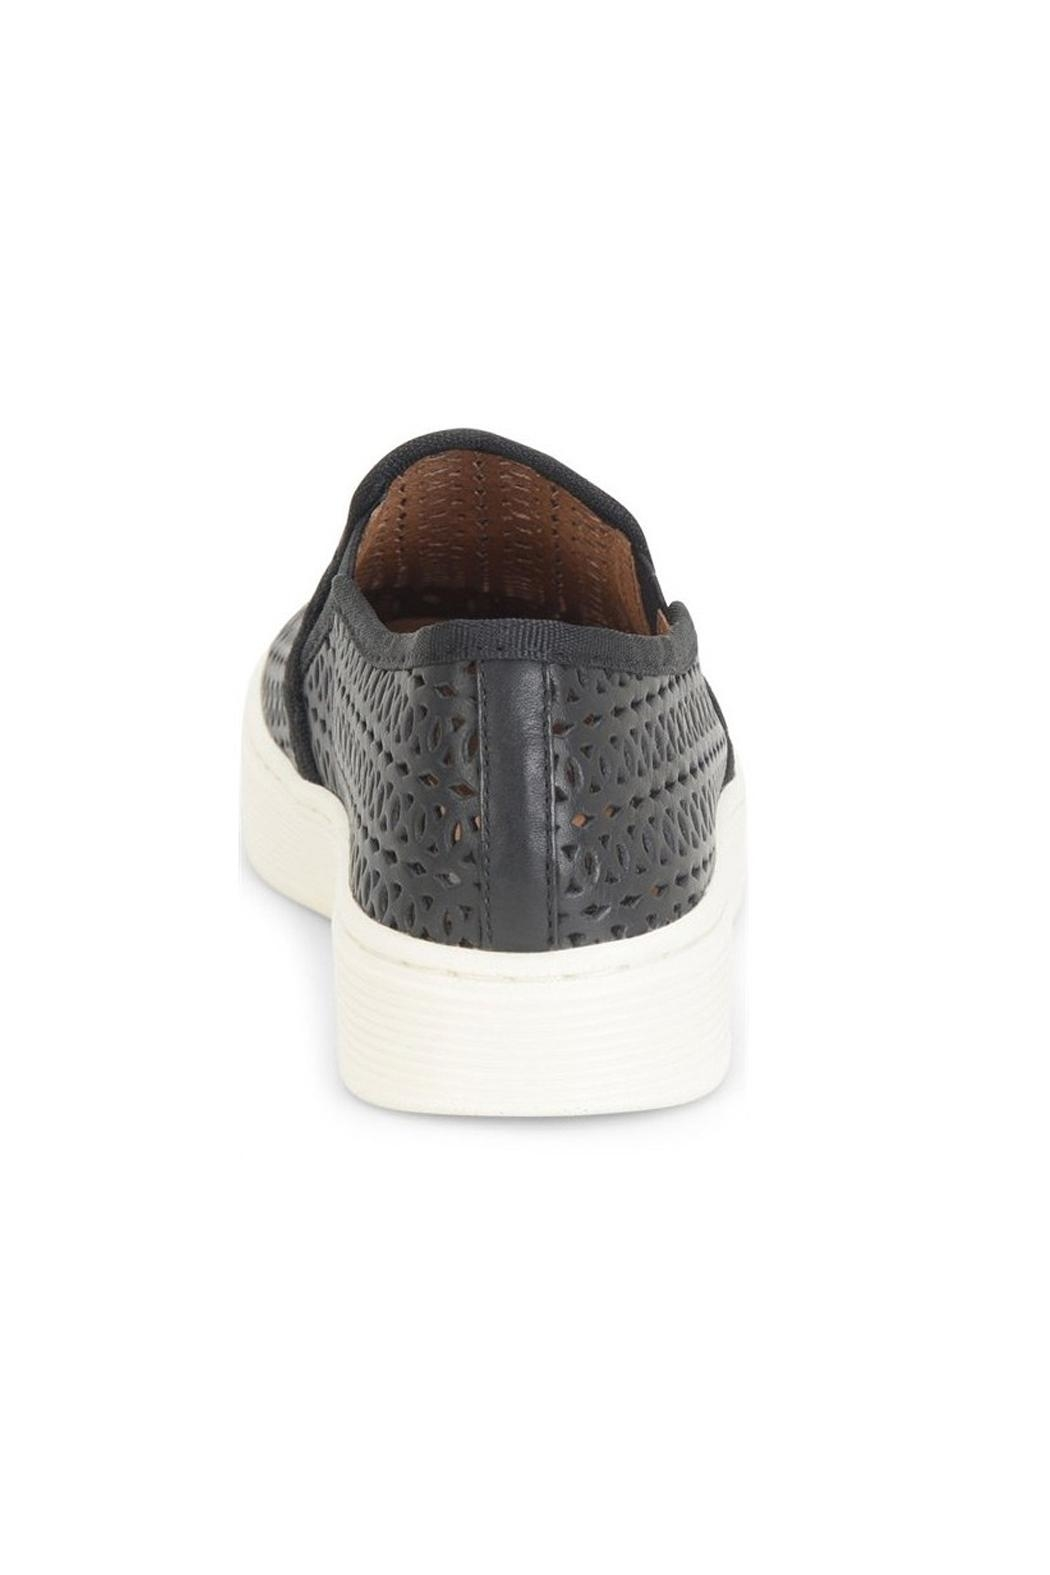 Sofft Black Perforated Sneaker - Front Full Image